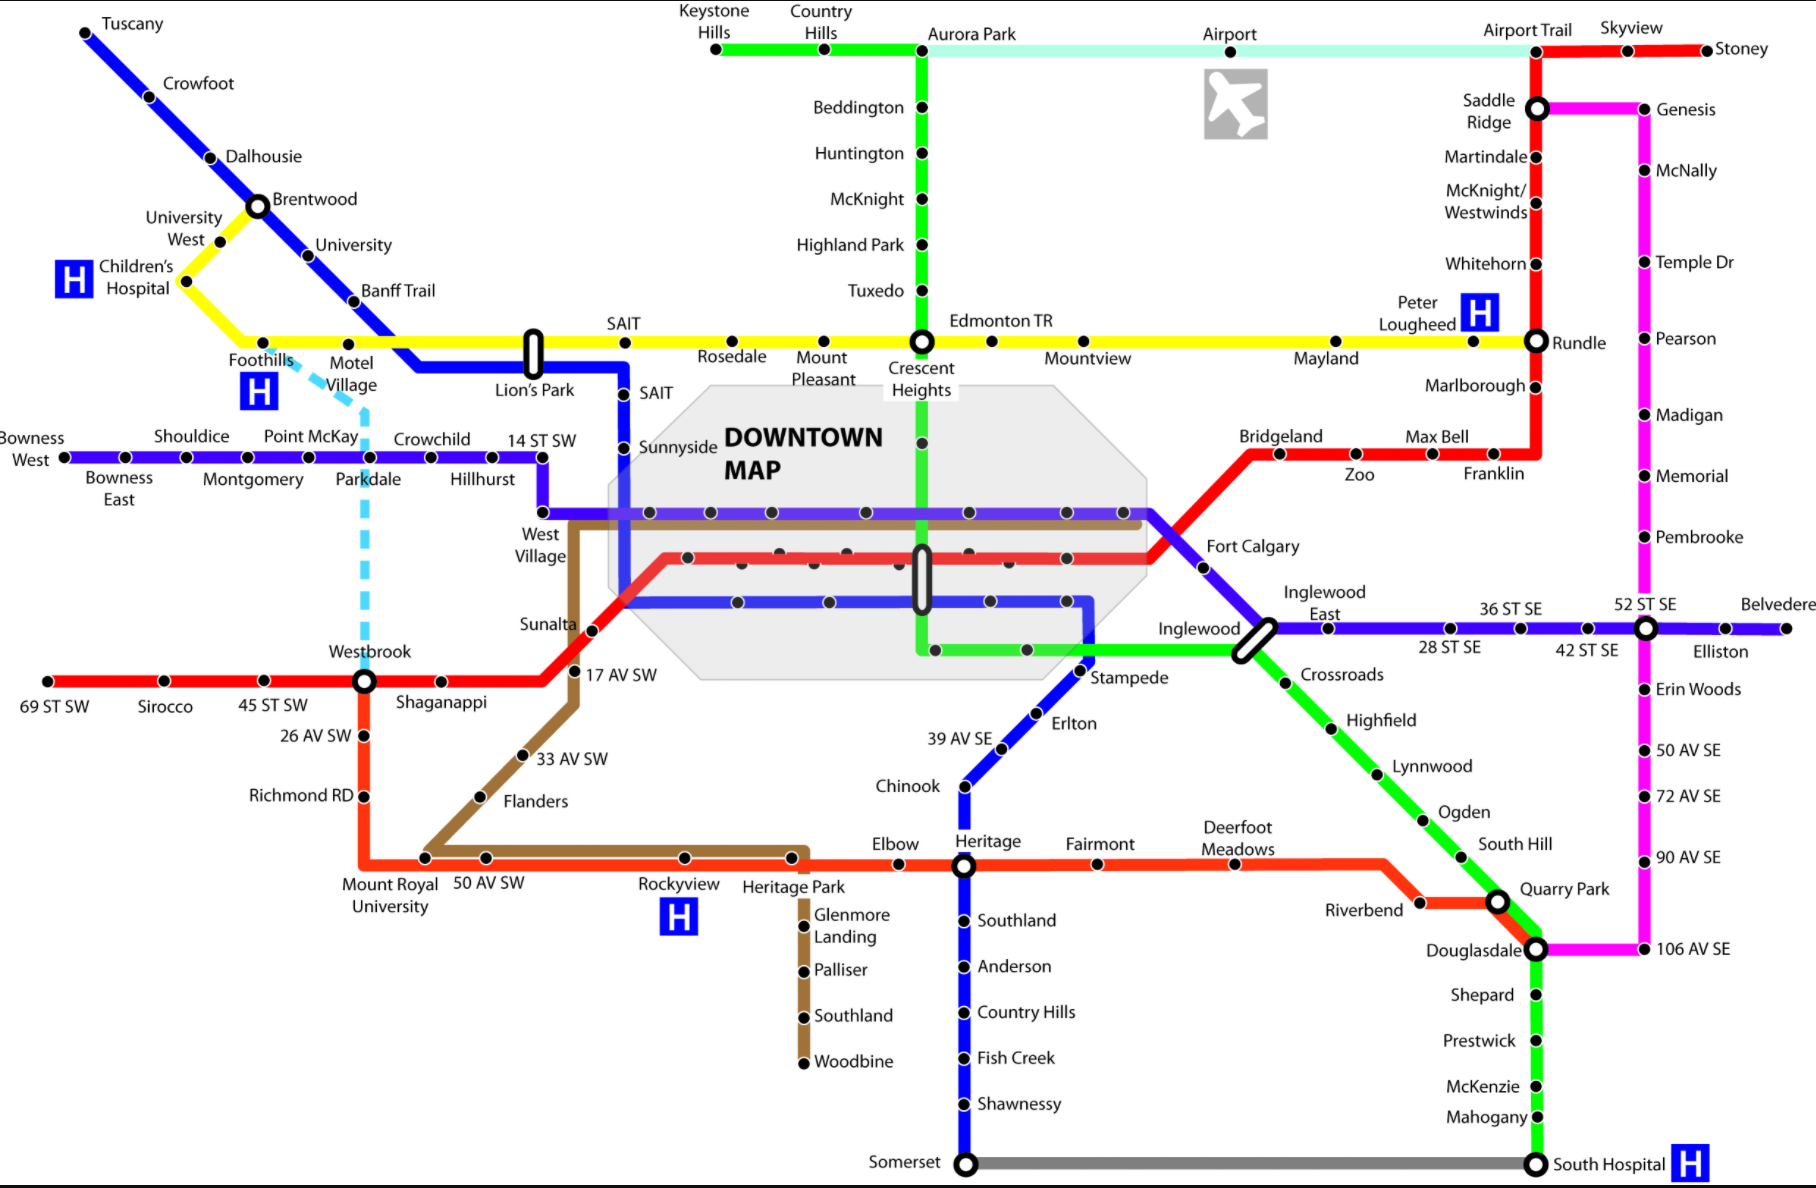 To be fair, Calgary has plans to develop its LRT and BRT service with more crosstown routes in the future. Today only the Blue and Red lines exist.